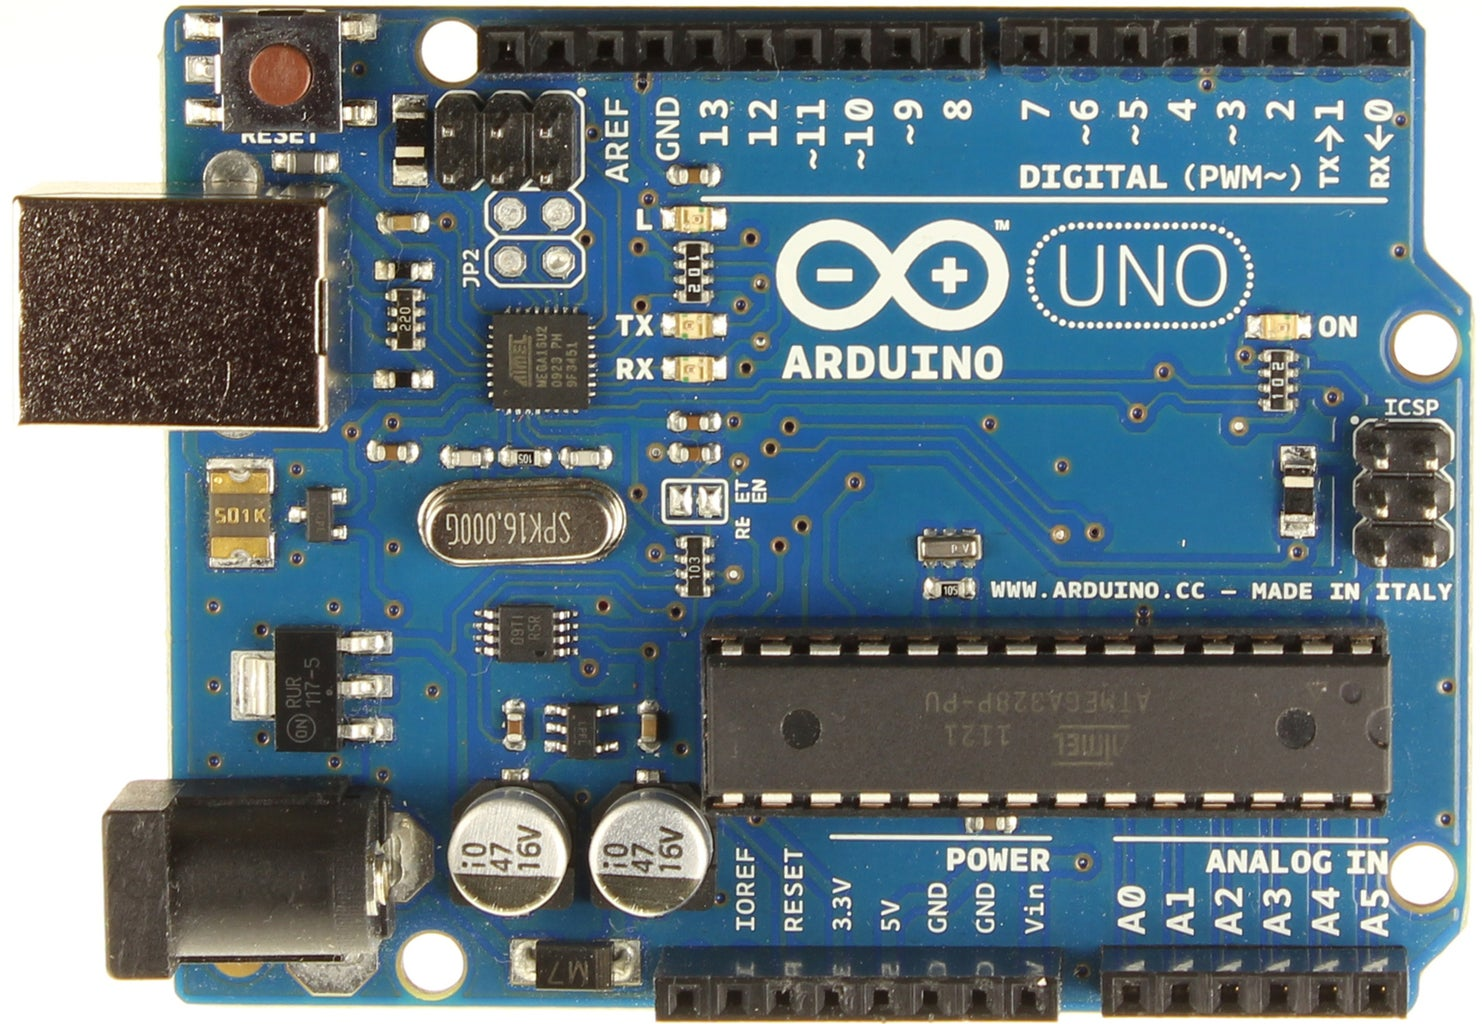 Upload the Code to Arduino